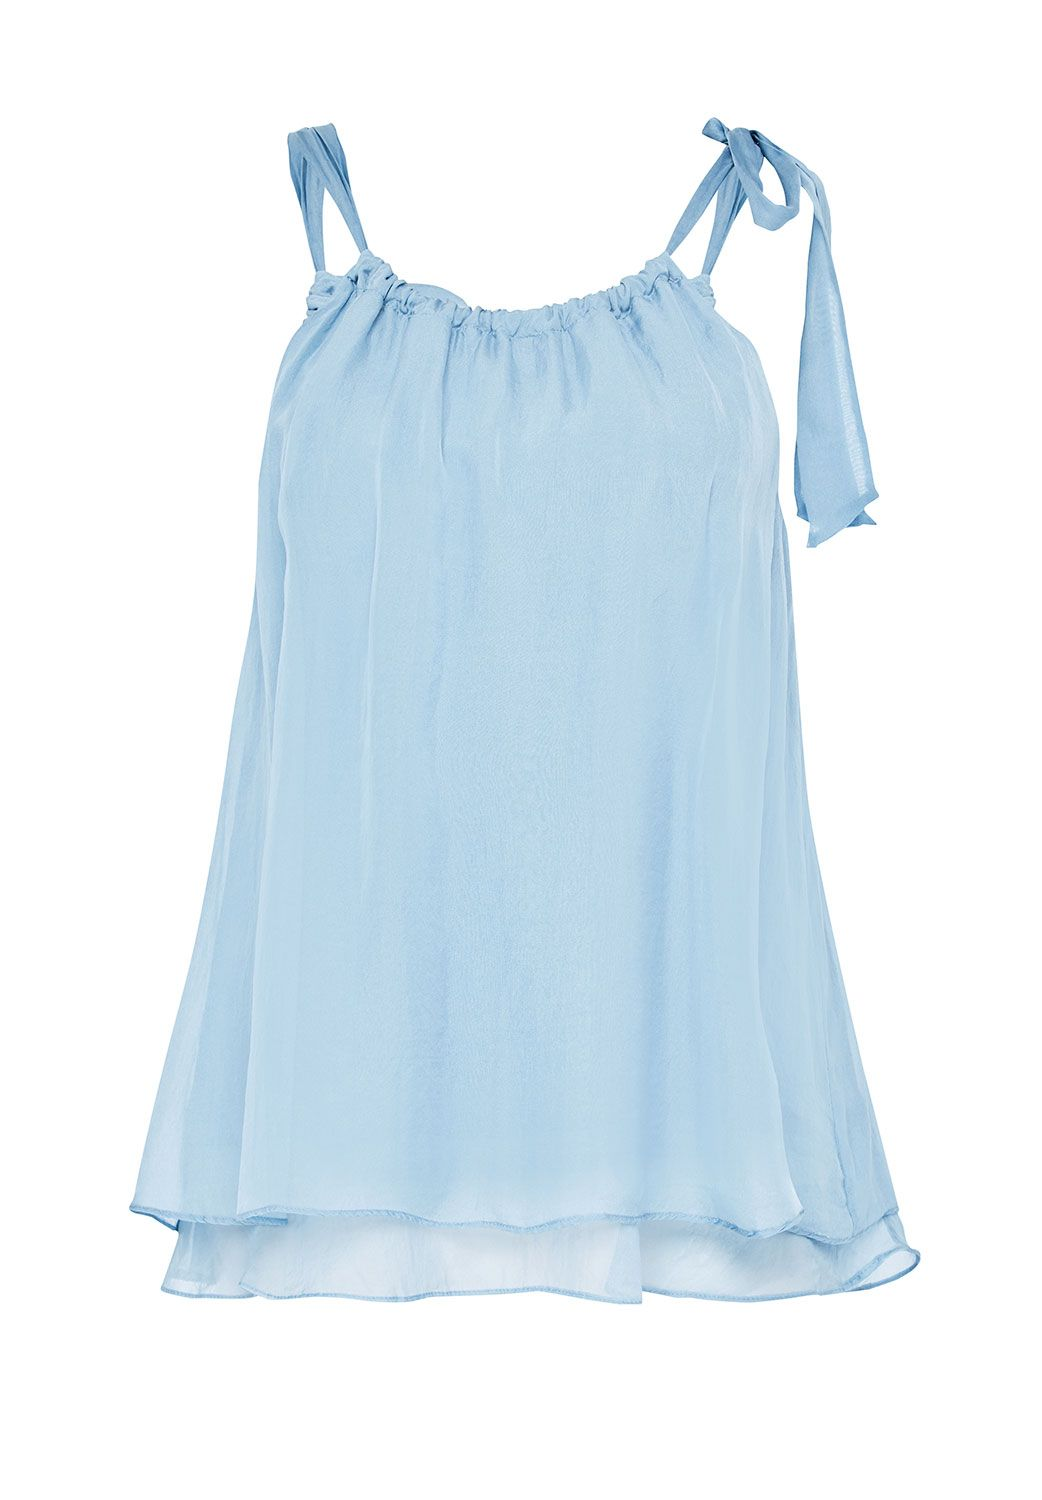 Hallhuber A-Line Top Made Of Silk Chiffon, Blue